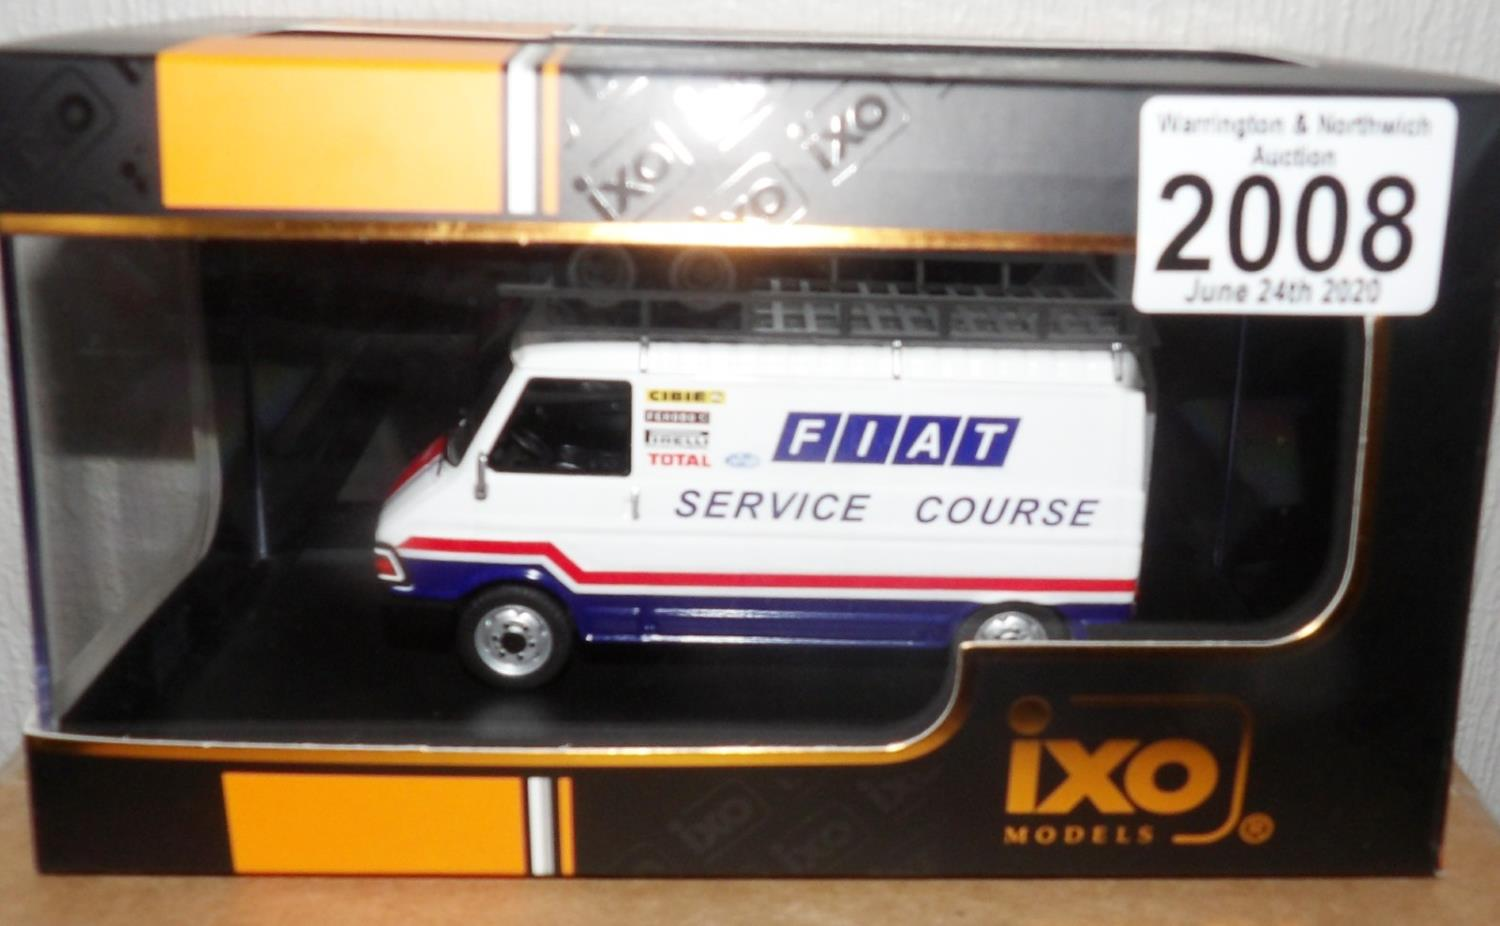 Lot 2008 - IXO 1.43 Scale FIAT 242 (FIAT FRANCE Service Course) 1979. P&P Group 1 (£14+VAT for the first lot